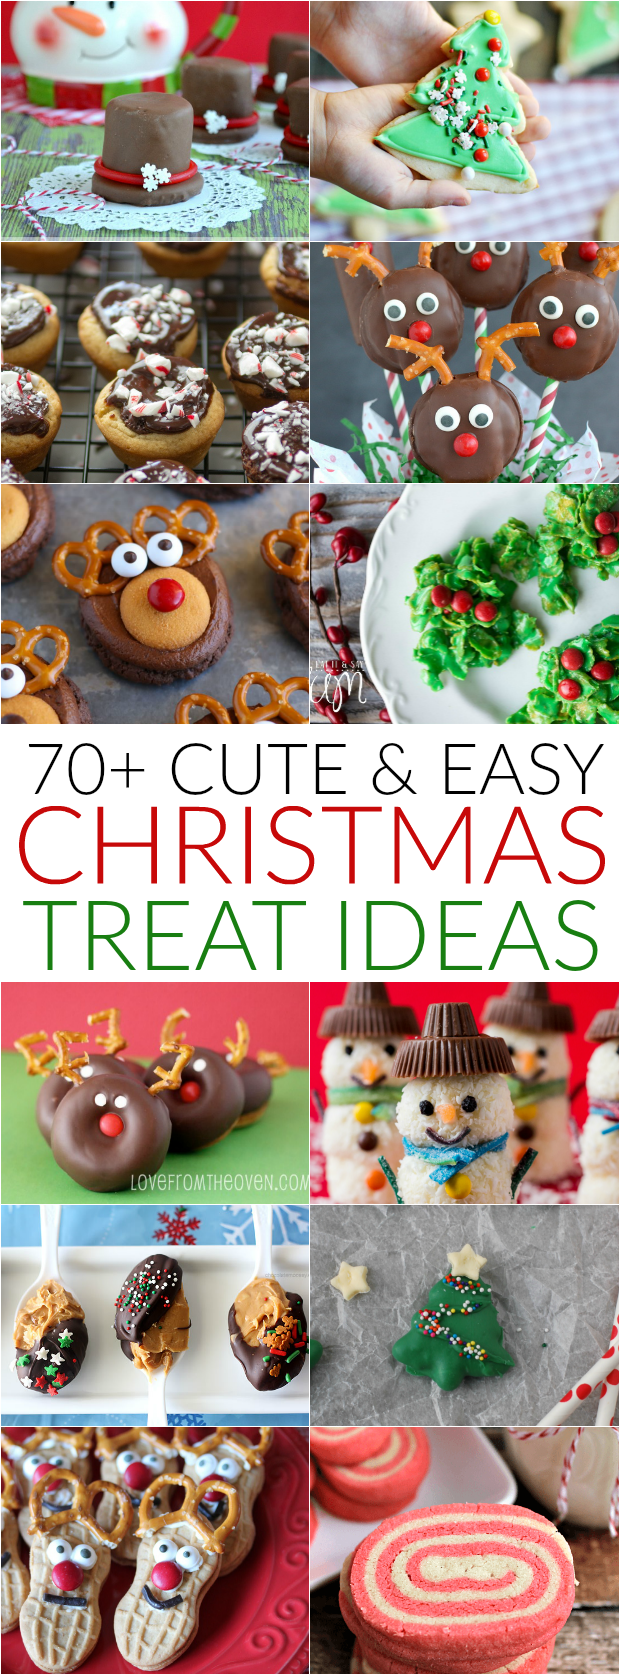 70+ Christmas Treats | The Great Holiday Pinterest Board | Pinterest ...